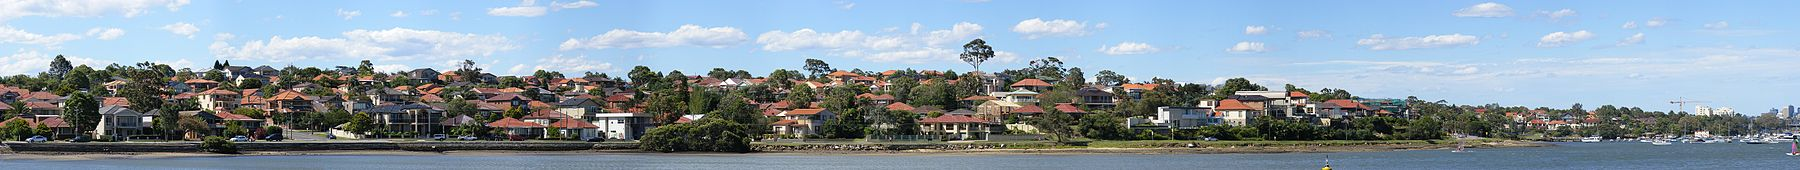 Five dock-ironcove.jpg